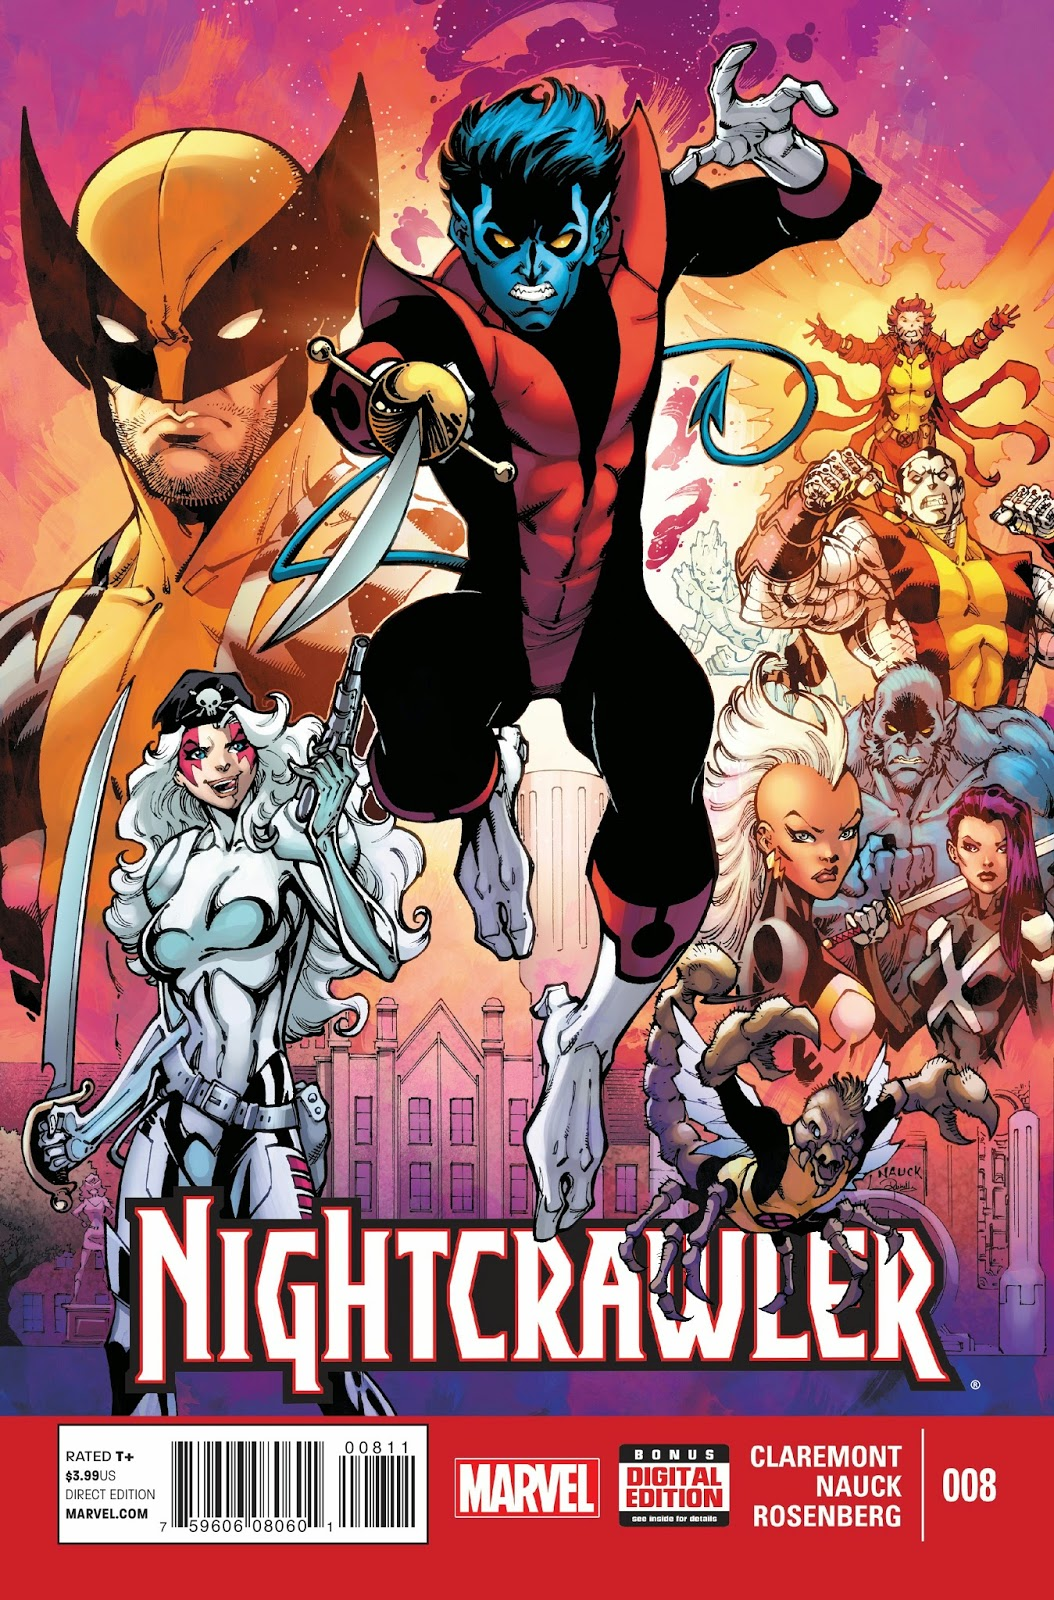 Nightcrawlers adventures restart in issue 8